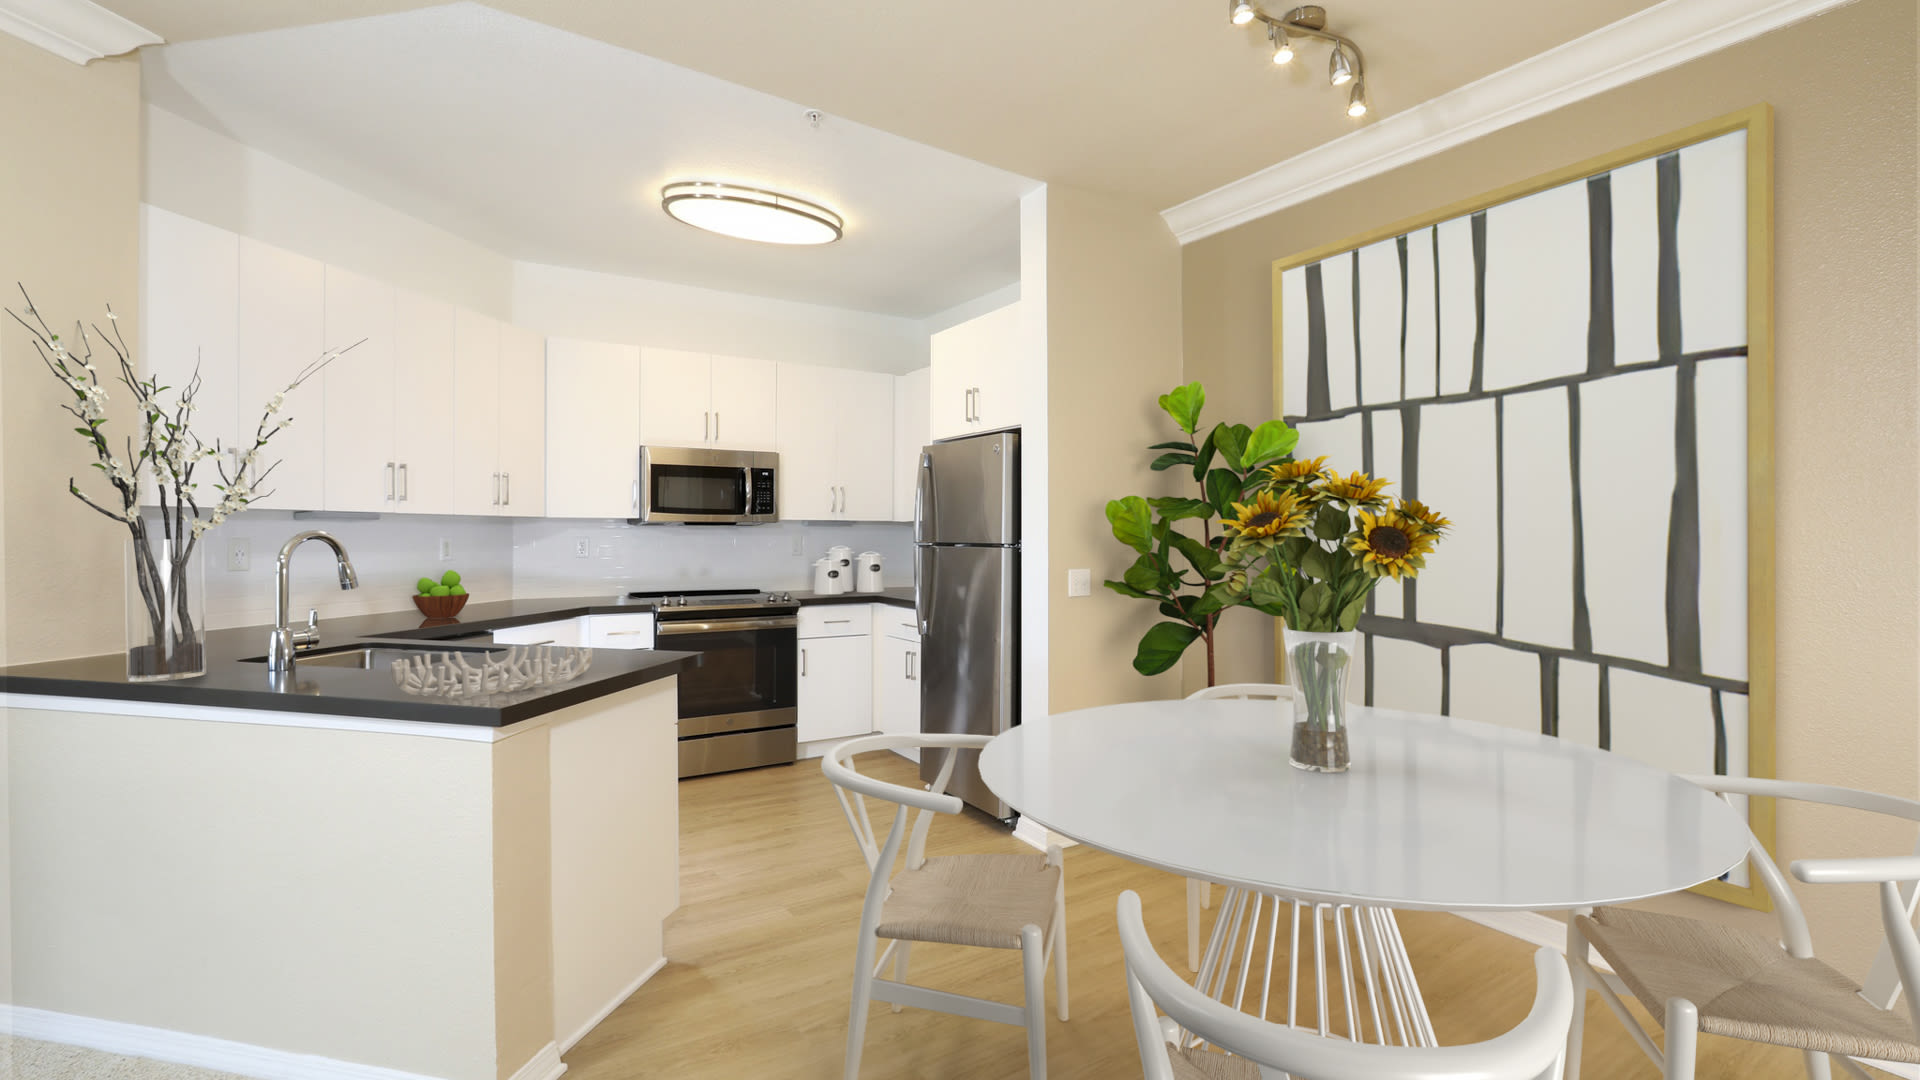 City Pointe Apartments - Kitchen with Stainless Steel Appliances